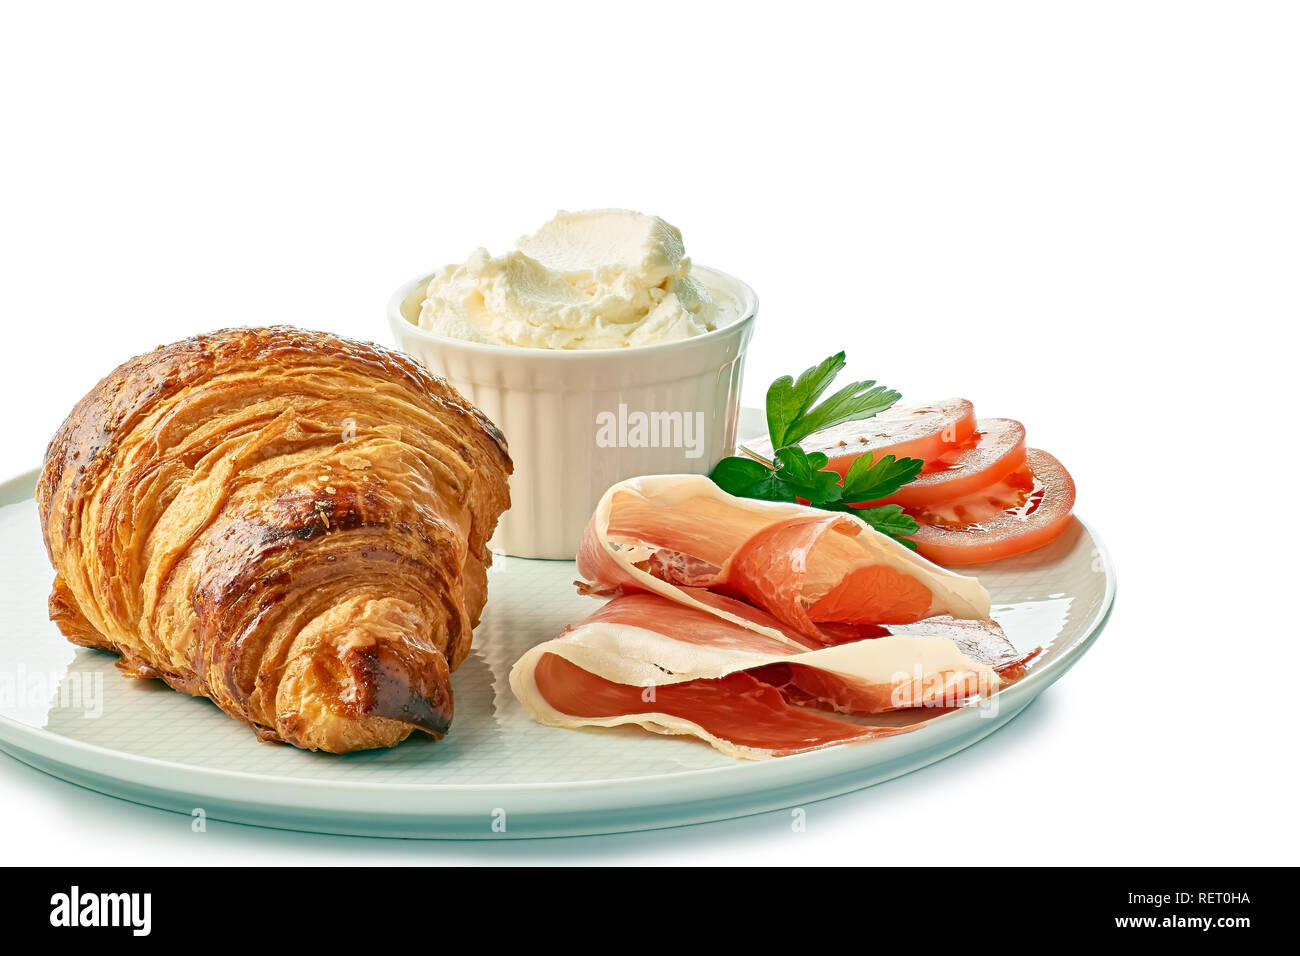 Dish with croissant creame cheese and jamon on white - Stock Image